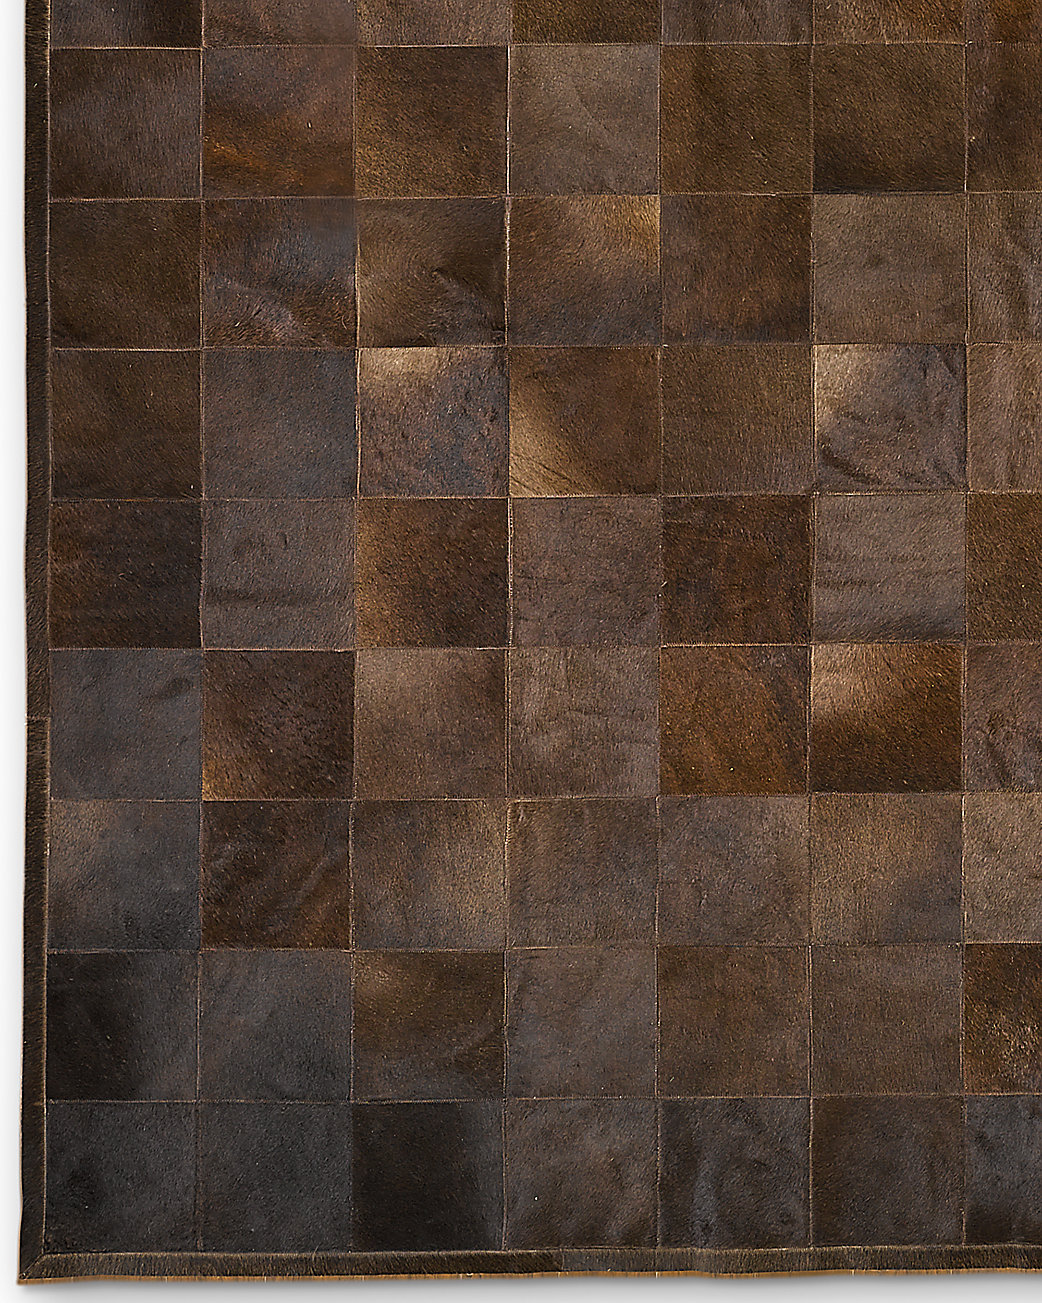 South American Cowhide Tile Rug - Chocolate